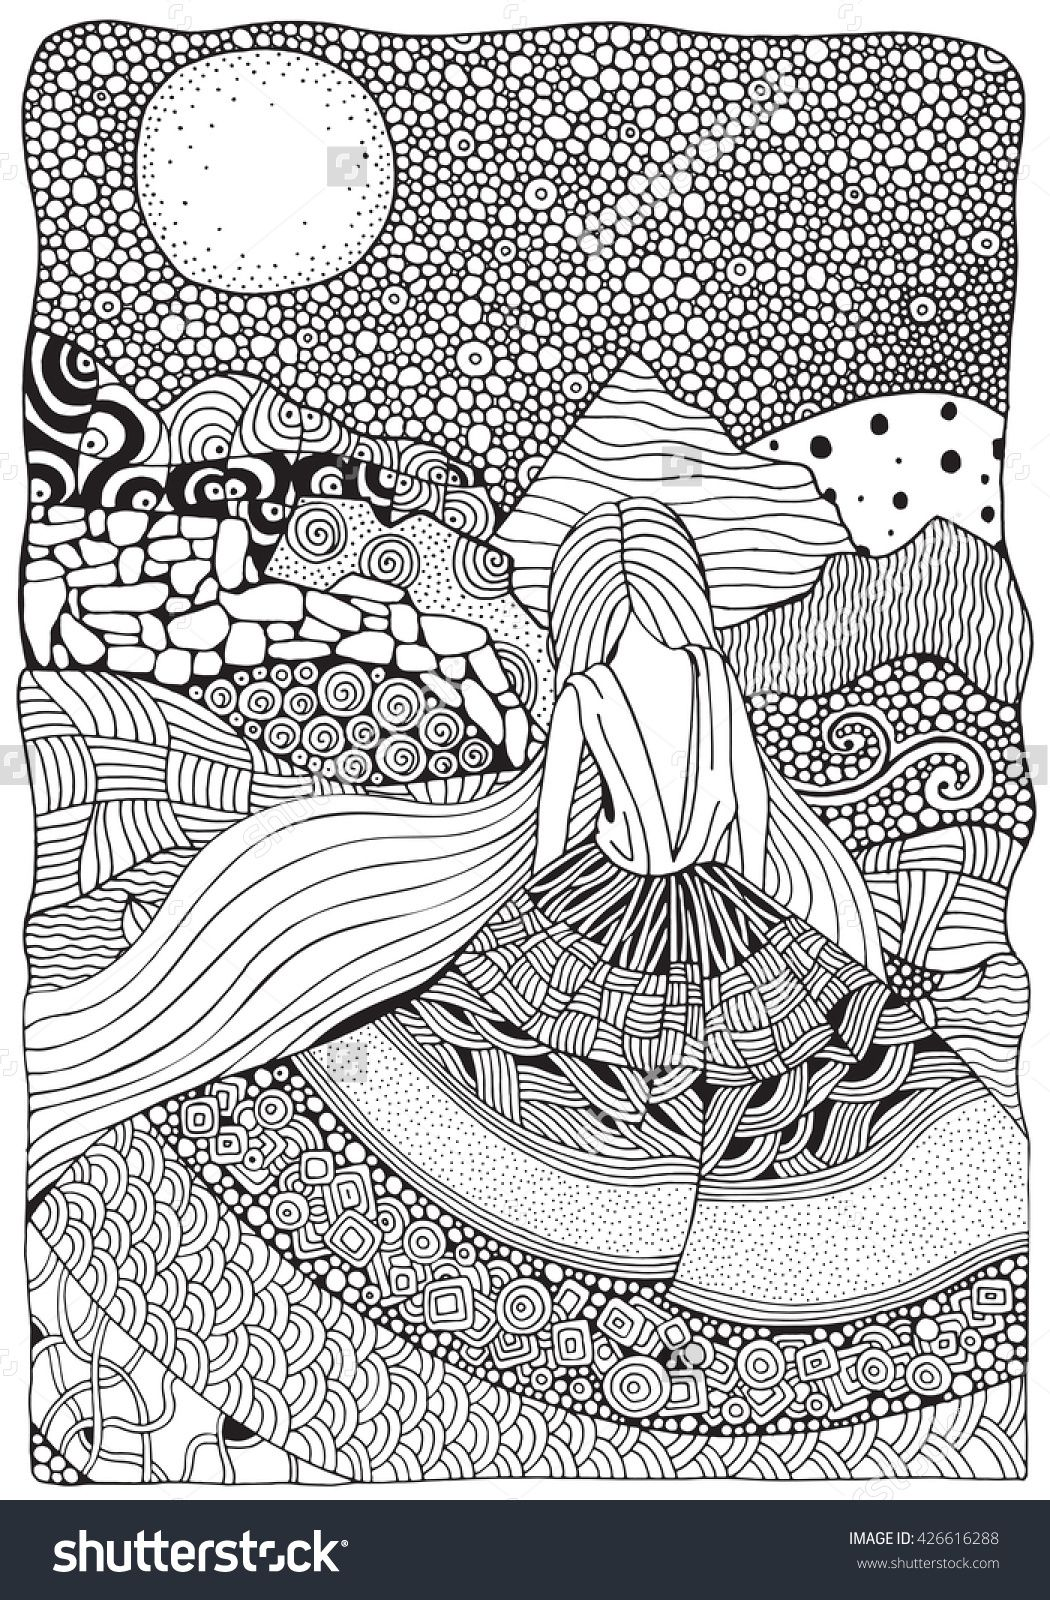 girl with long hair additionally Coloring pages for adults 5 moreover  moreover  moreover  further  likewise elf girl with long hair coloring page together with  also 2be01dfe1d52090691cc9ae075c693ac in addition  additionally 82163aabbfa00cbb0dc38220d744b587. on long coloring pages for adults